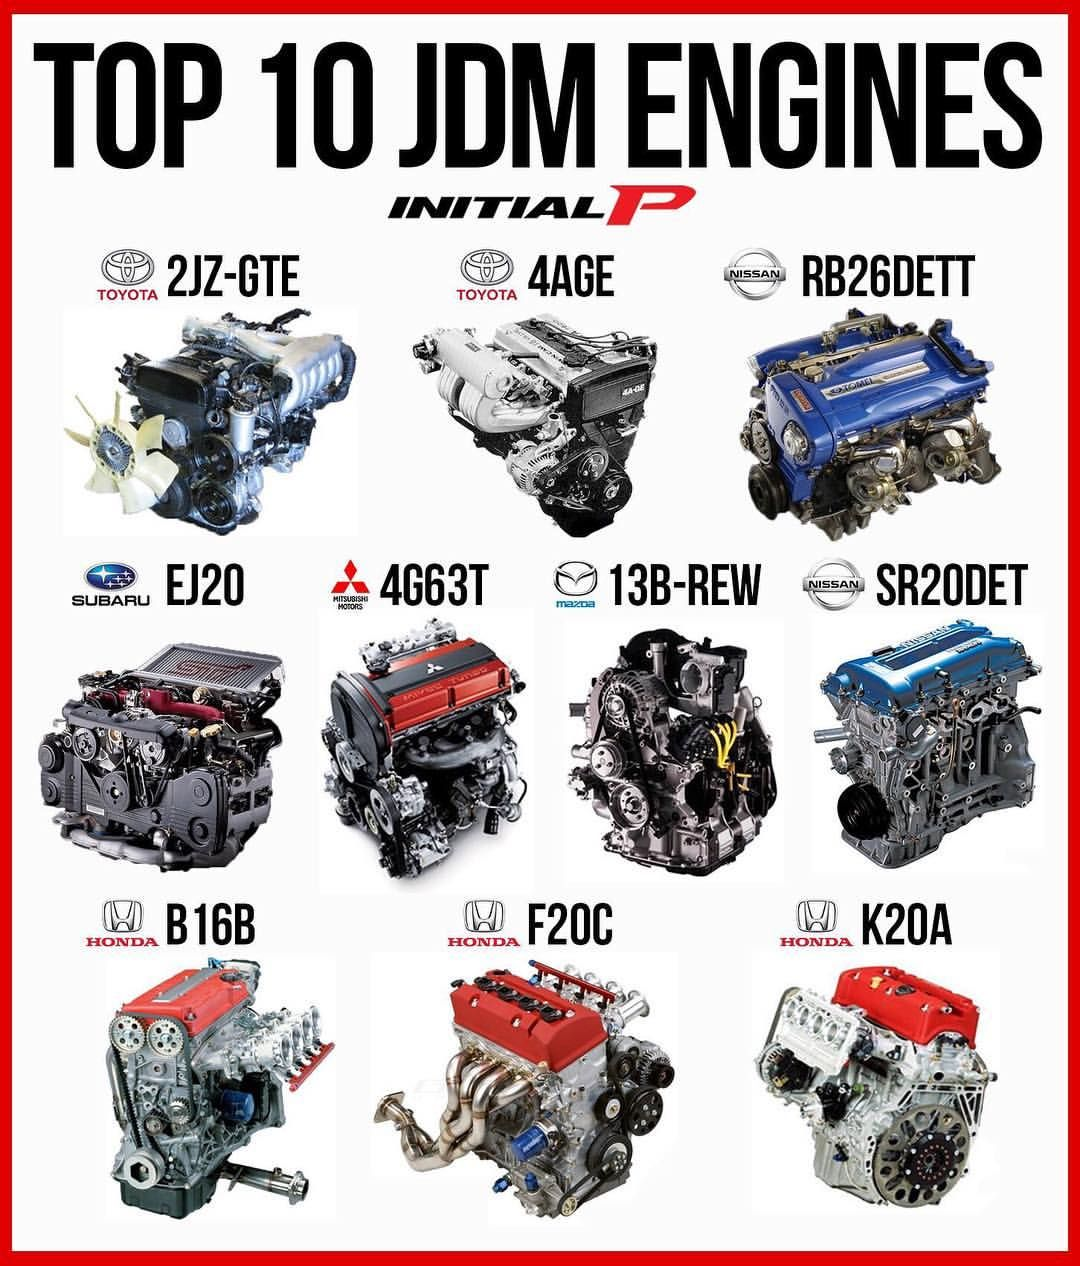 JDM engine | Ok cars | Jdm engines, Cars, Tuner cars